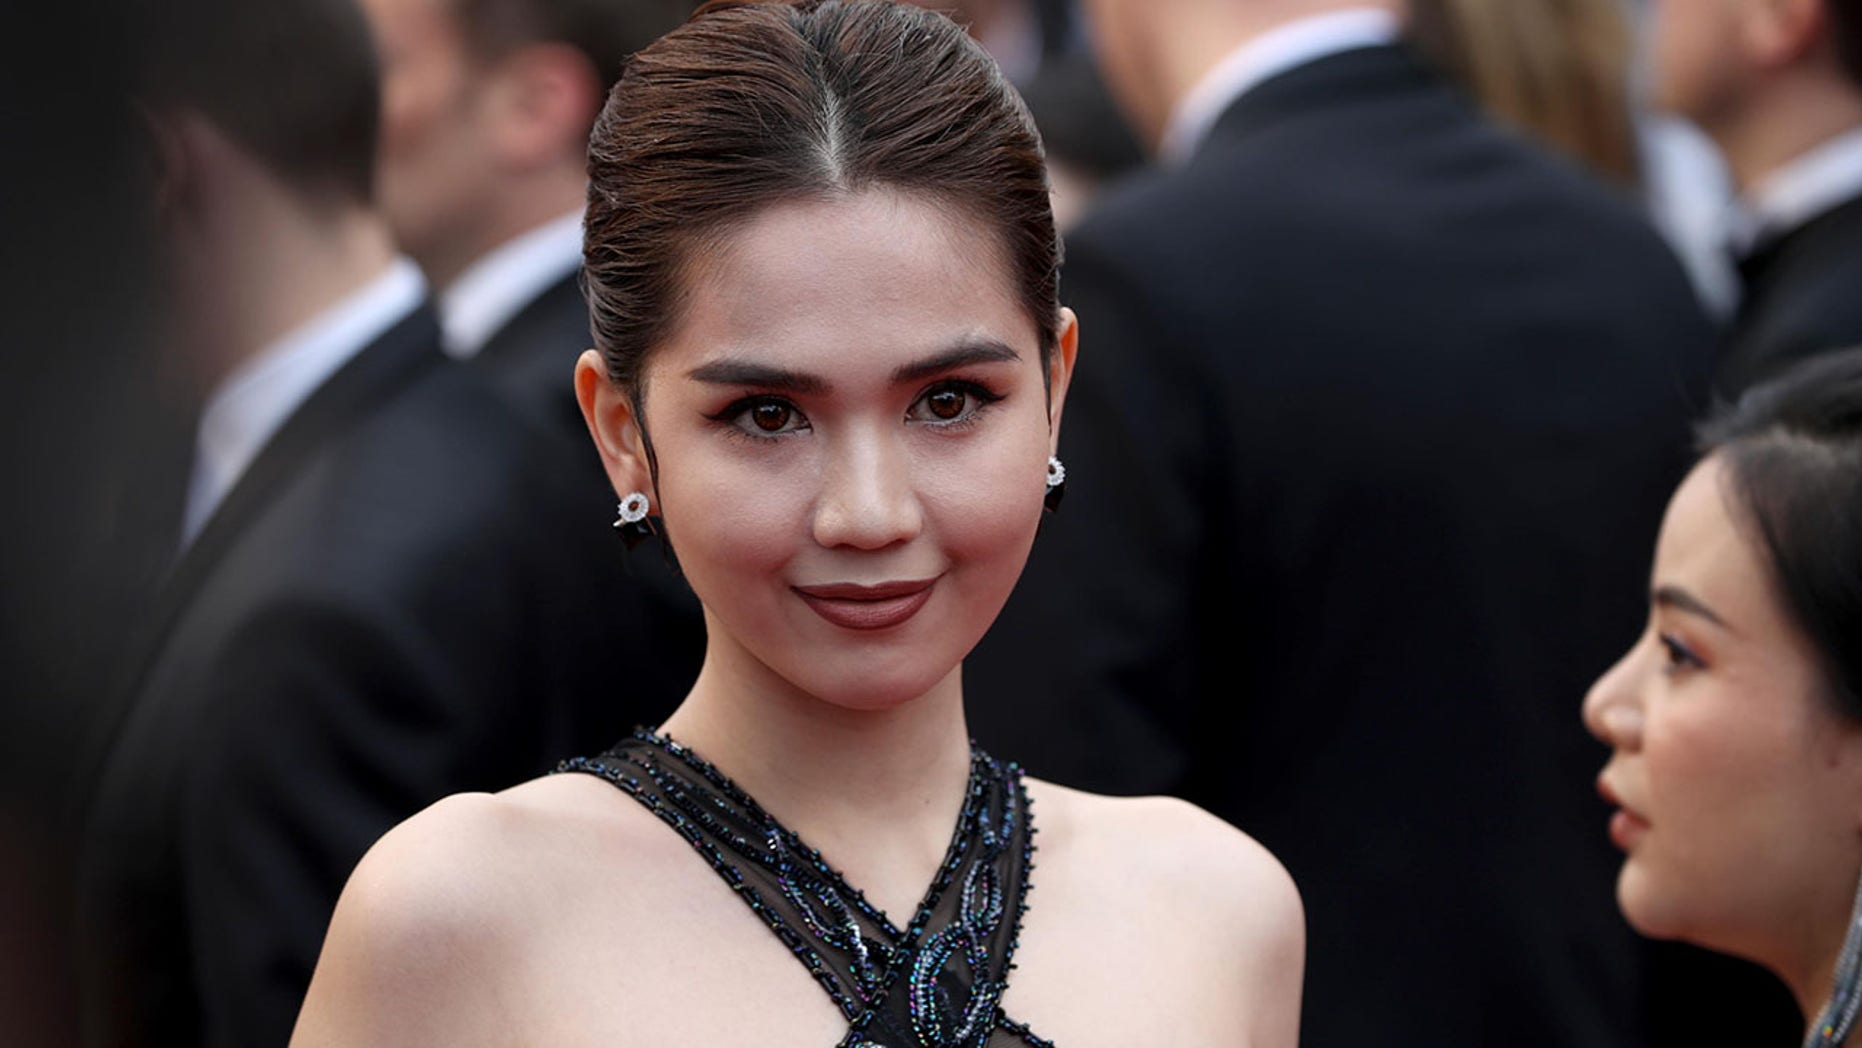 Vietnamese model's skimpy dress at Cannes film fest may result in fine: report